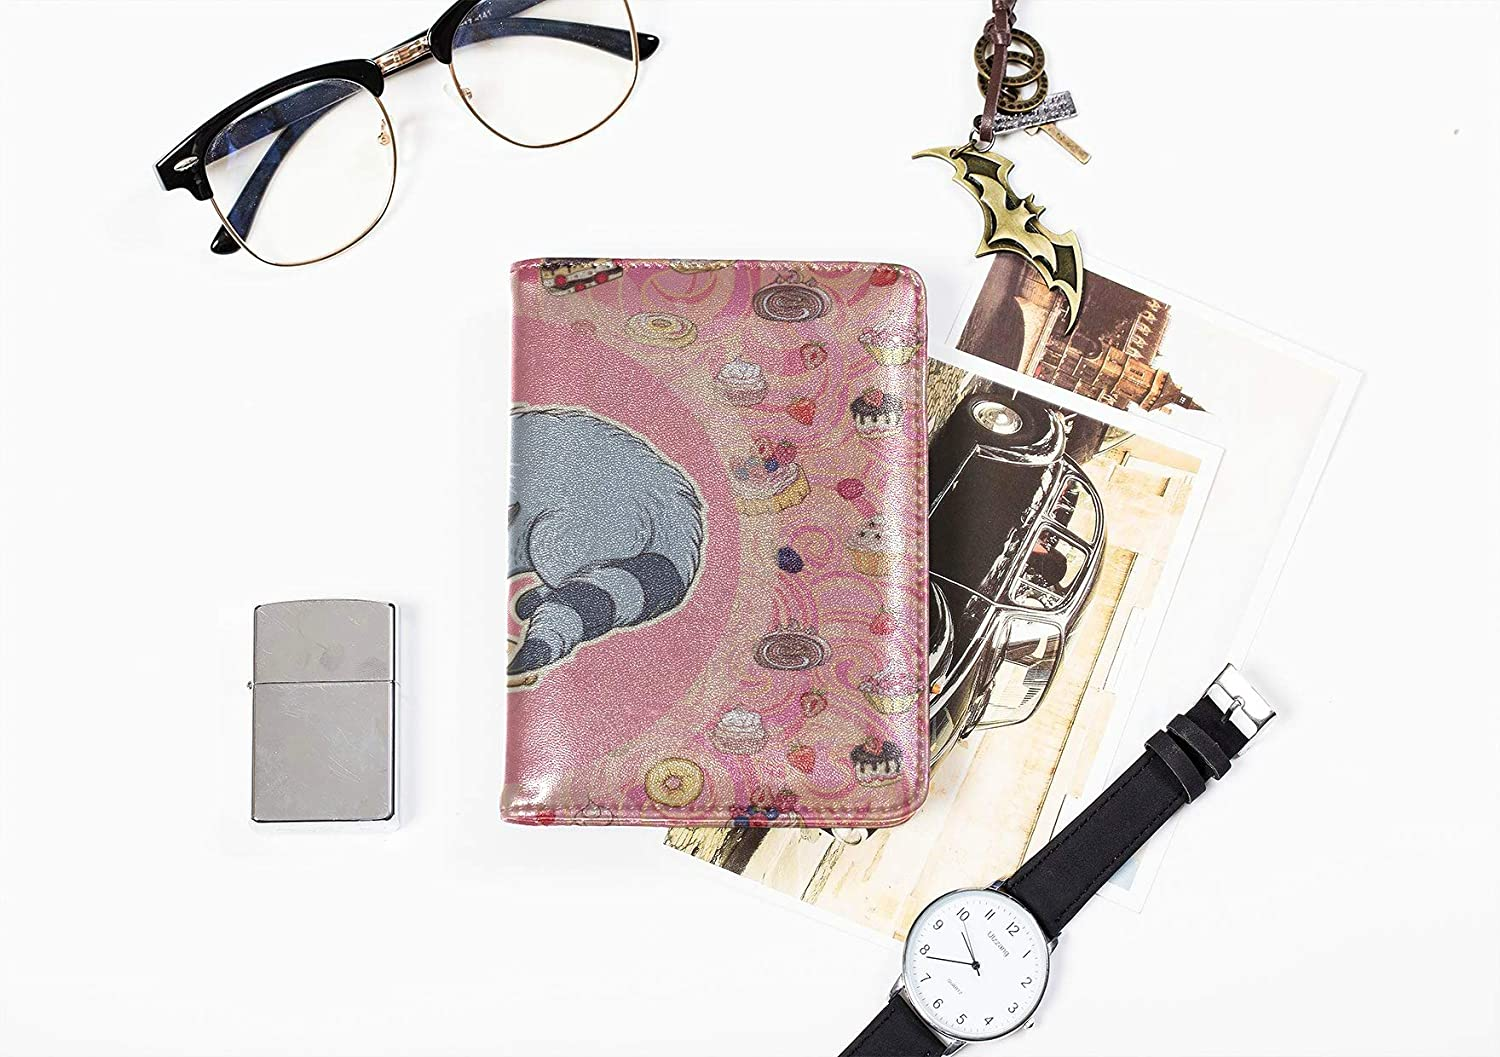 Mens Passport Case Fashion Creative Beautiful Painting Color Passport Cover Multi Purpose Print Cute Passport Cover For Women Travel Wallets For Unisex 5.51x4.37 Inch